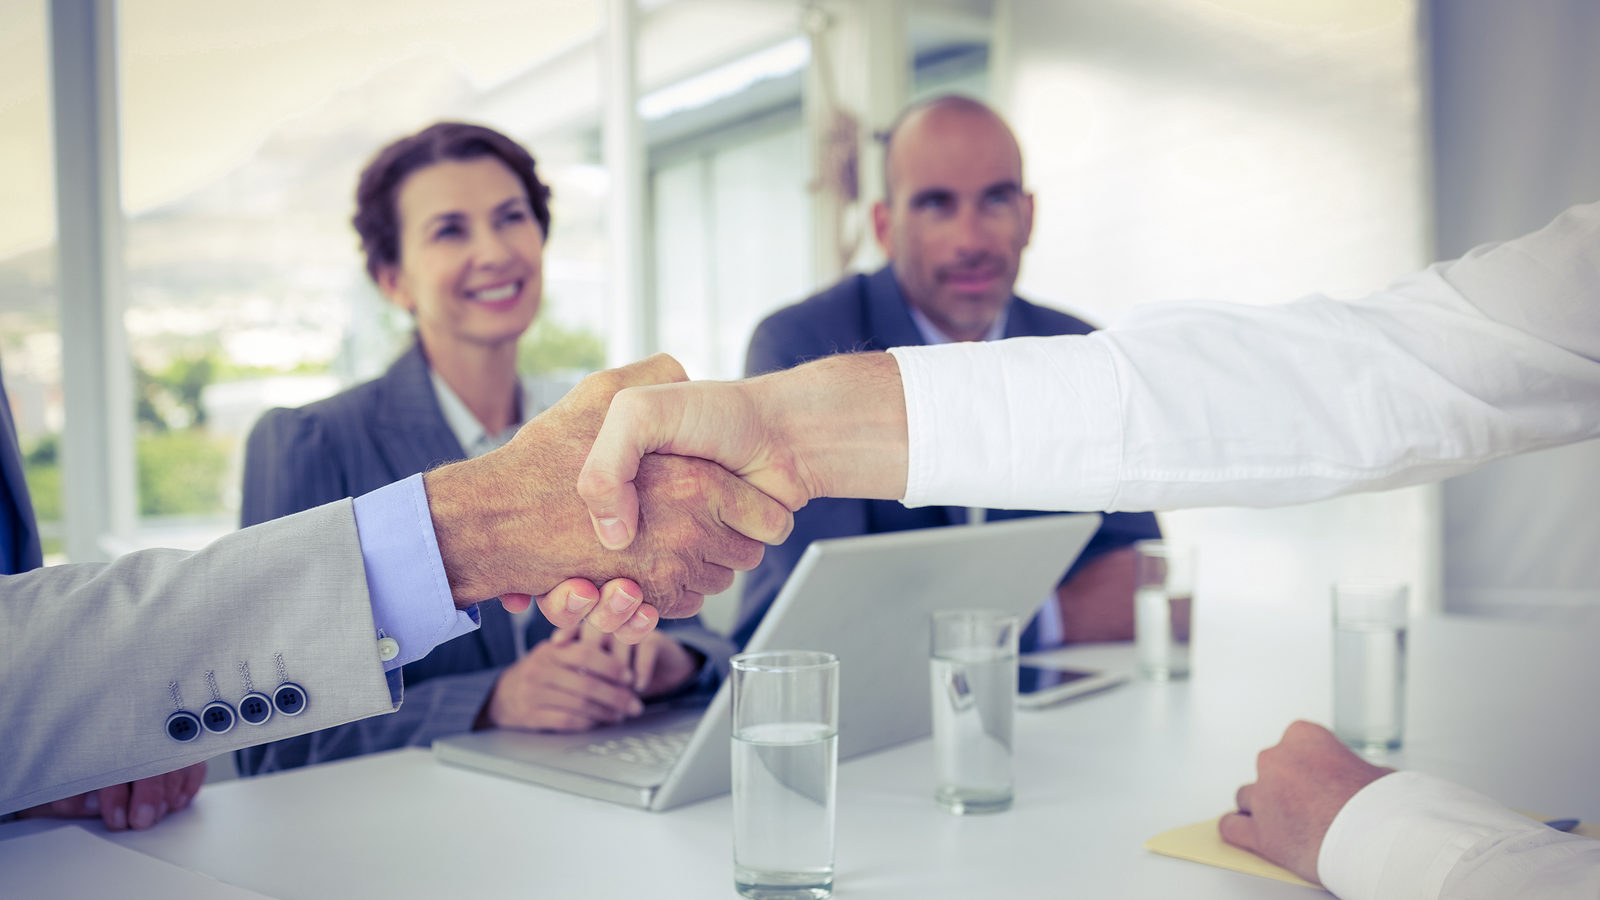 How to Impress Top-Notch Candidates During an Interview